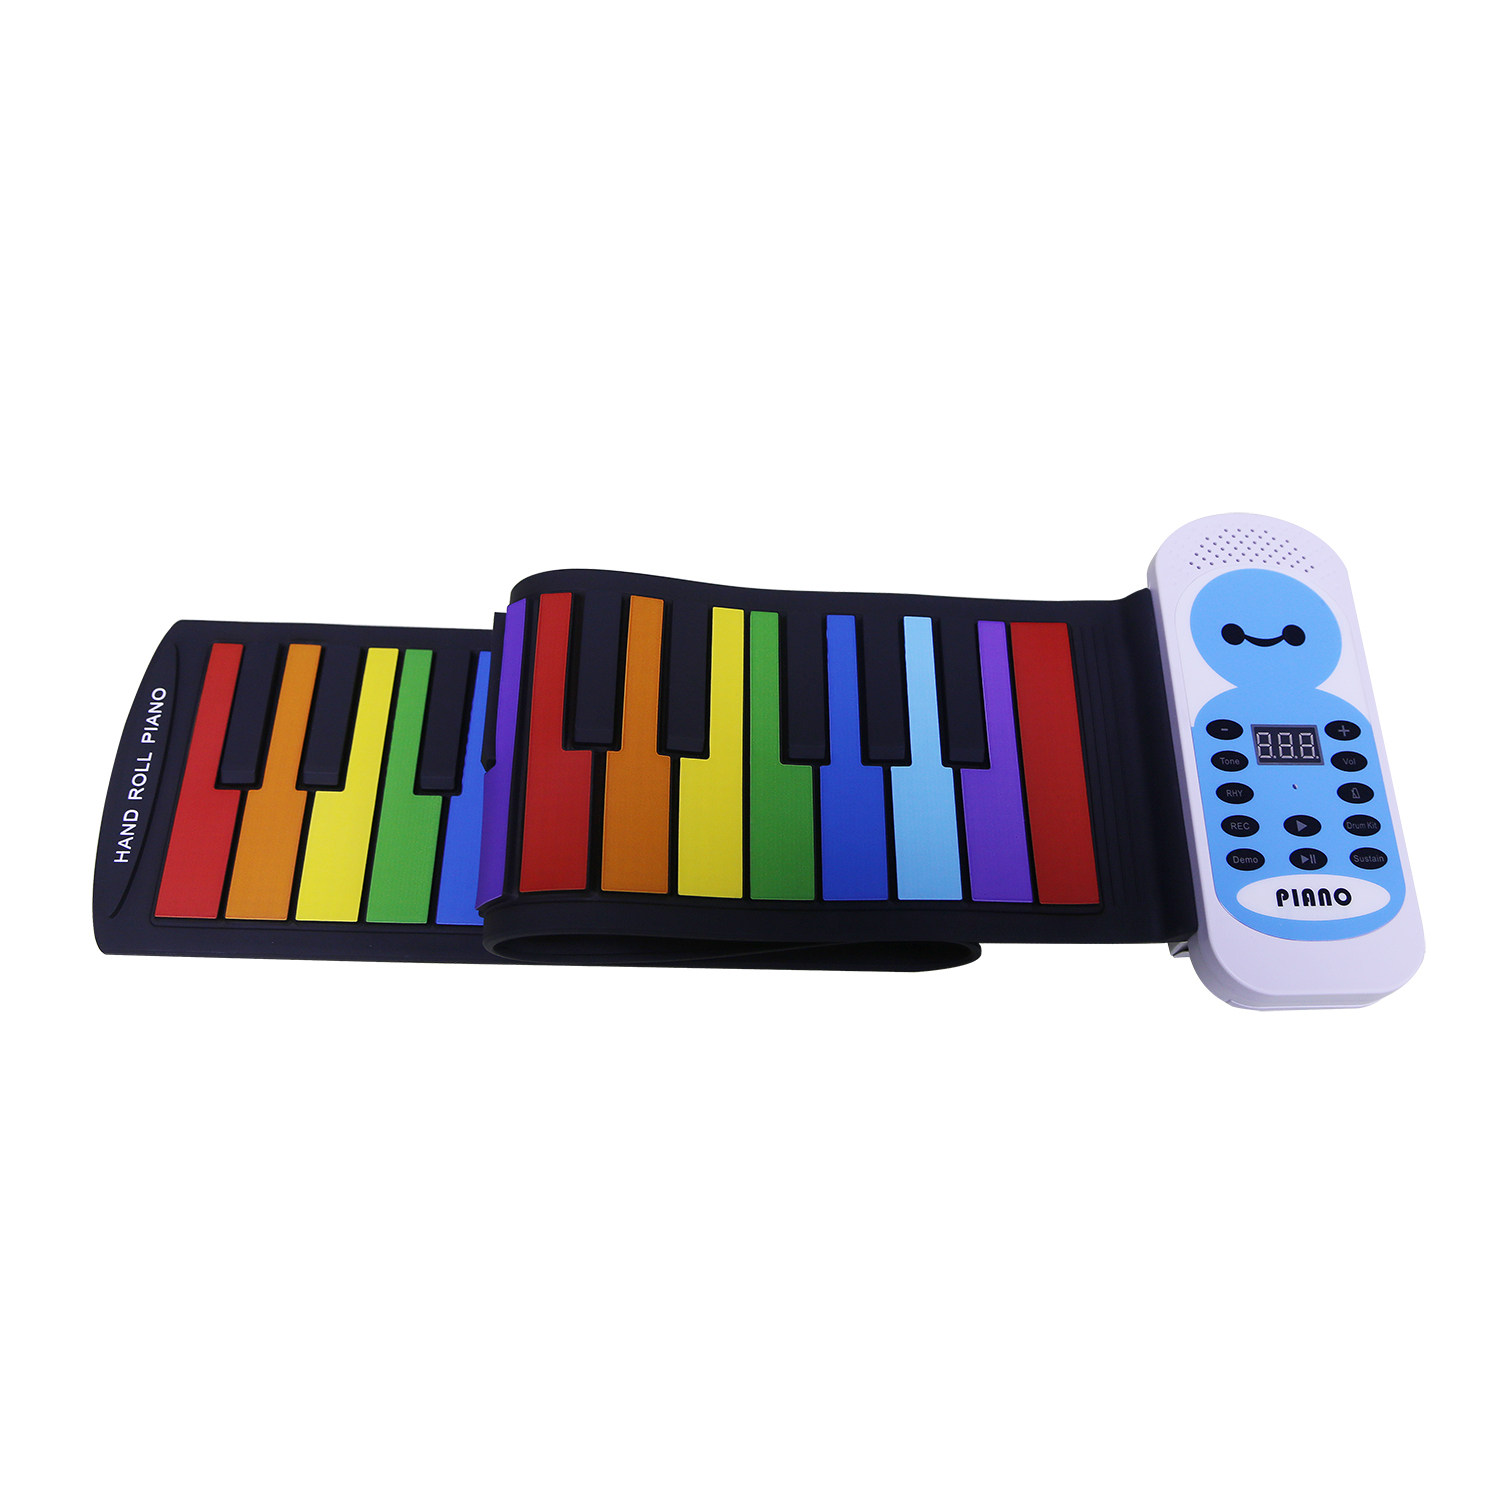 New 49 Keys Colorful Silicon Flexible Hand Roll Up Piano Electronic Keyboard Organ Enlightenment Music Gift головка ingersoll rand s64m21l ps1